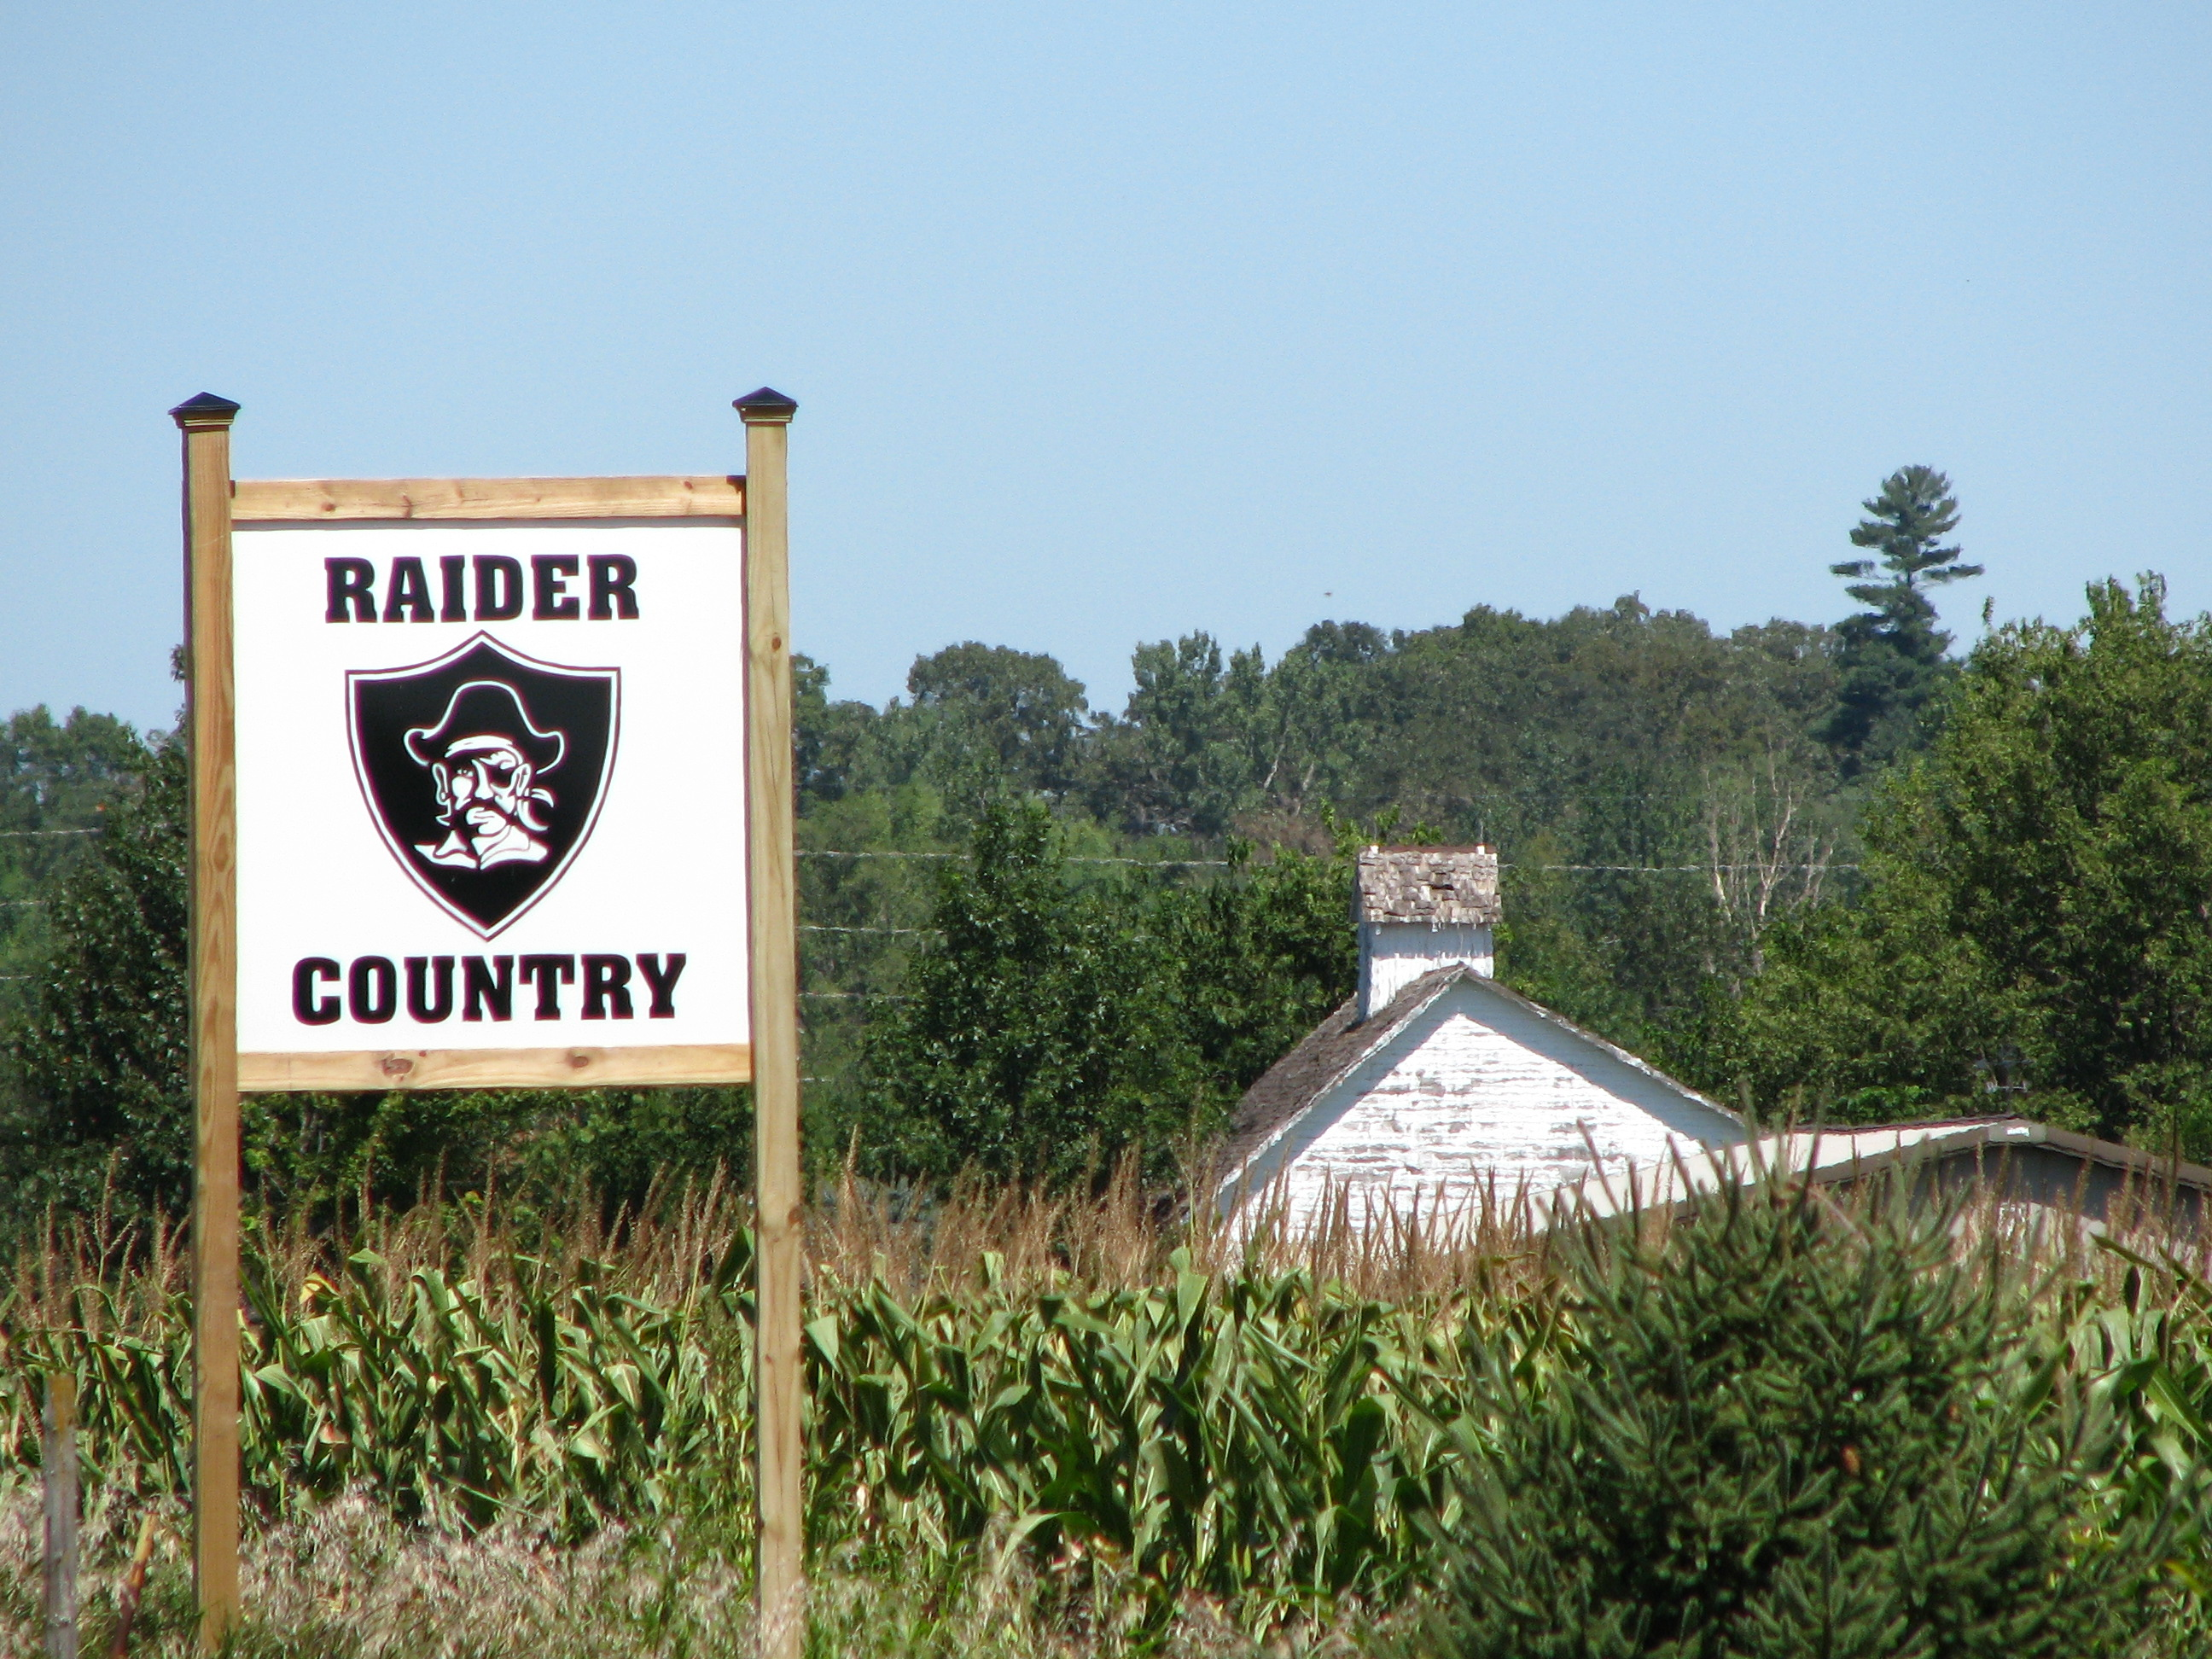 Raider Country sign barn